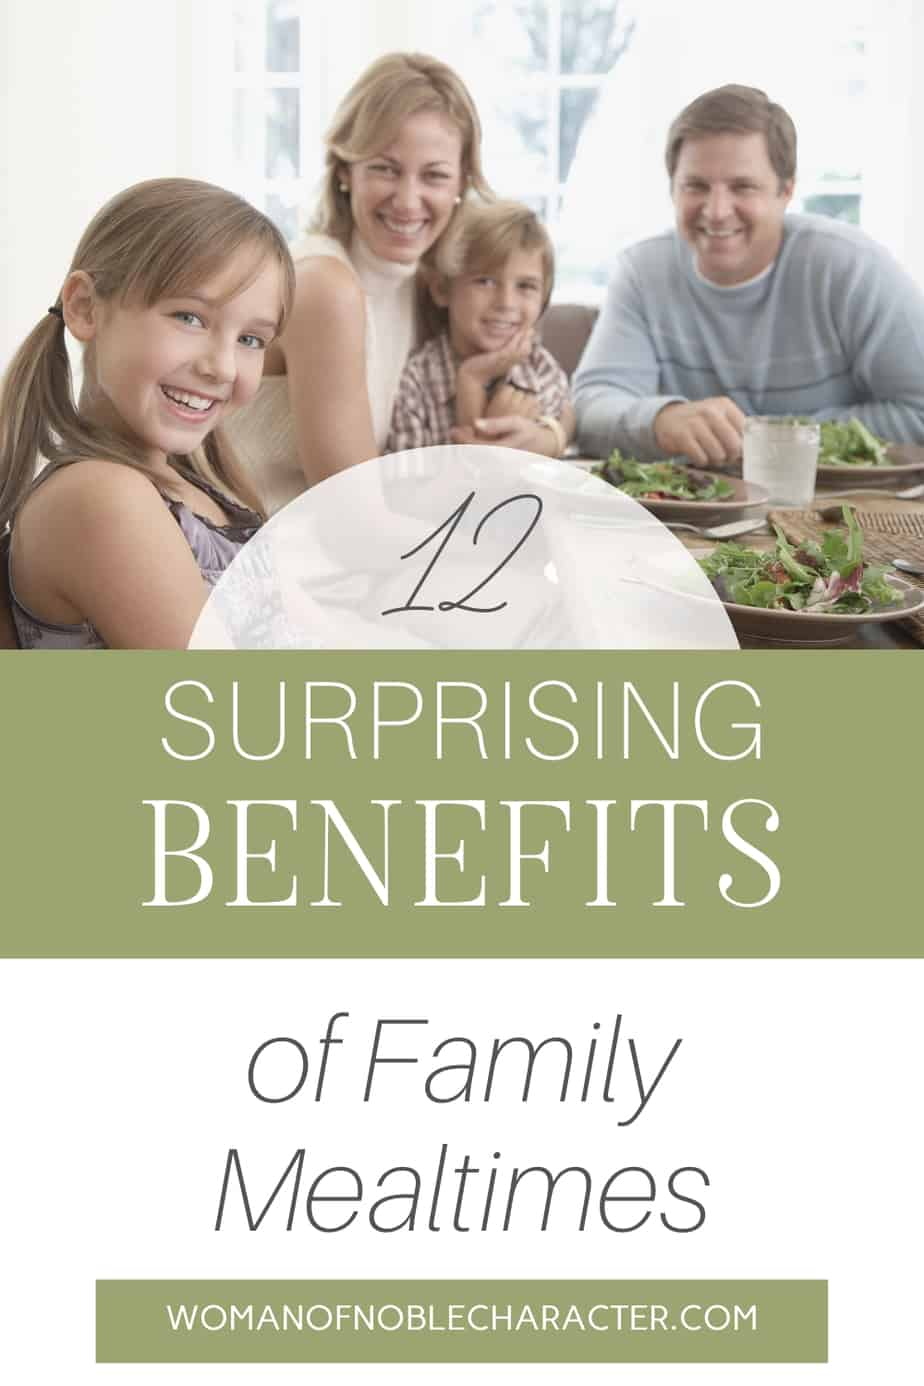 An image of a mother and father and two children sitting around the dinner table smiling and looking at the camera with a text overlay that says 12 Surprising Benefits Of Family Mealtimes